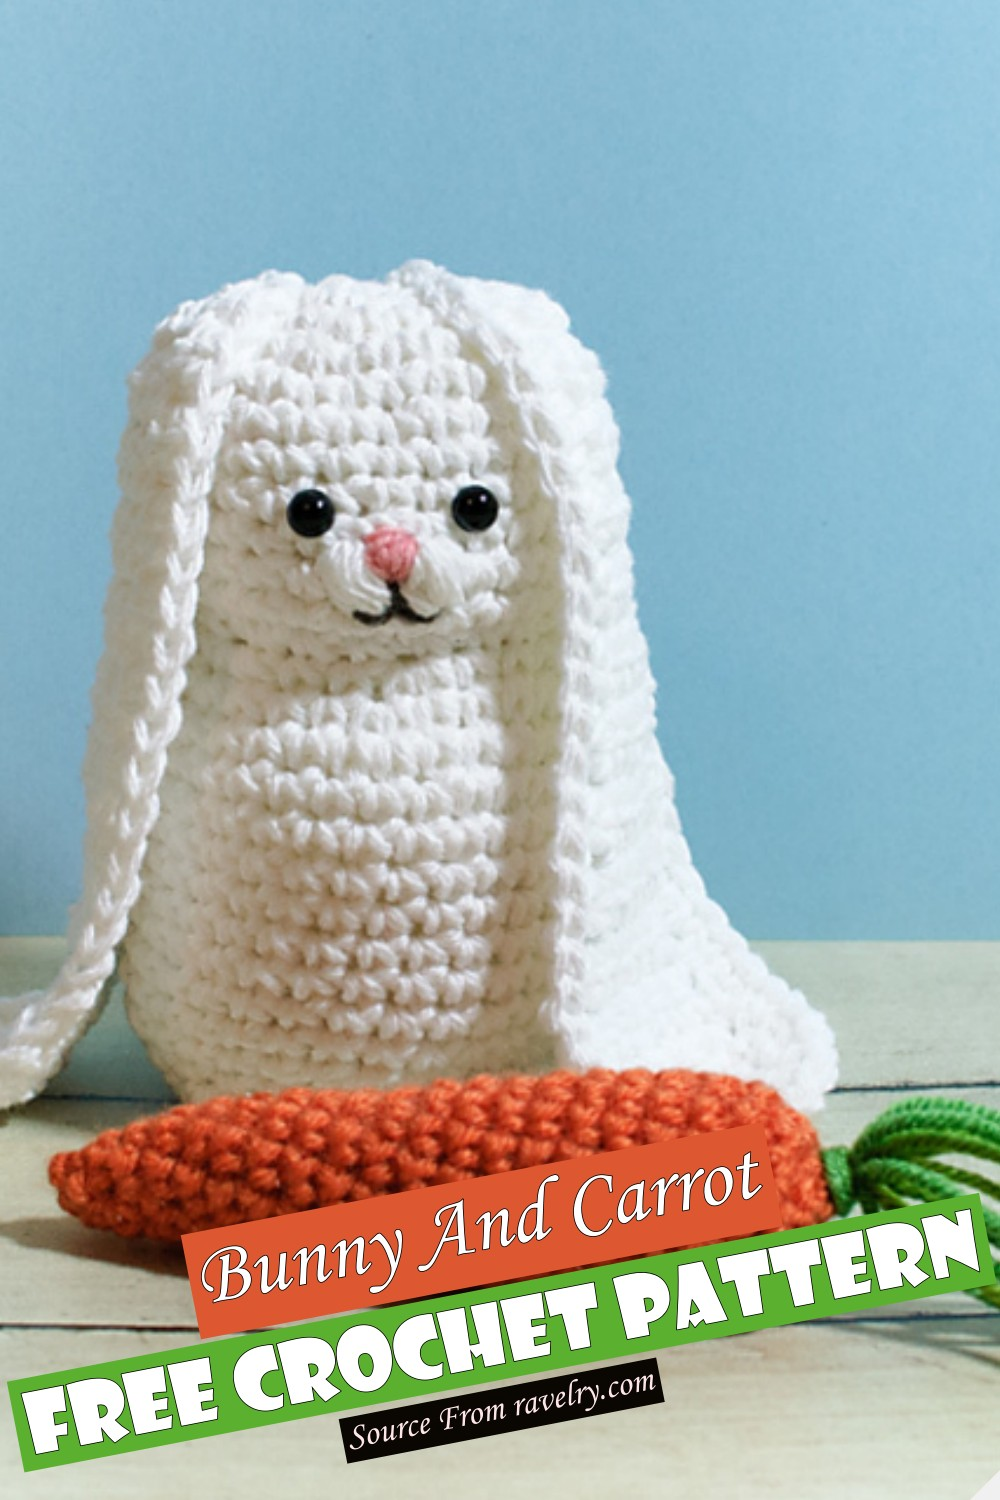 Free Crochet Bunny And Carrot Pattern